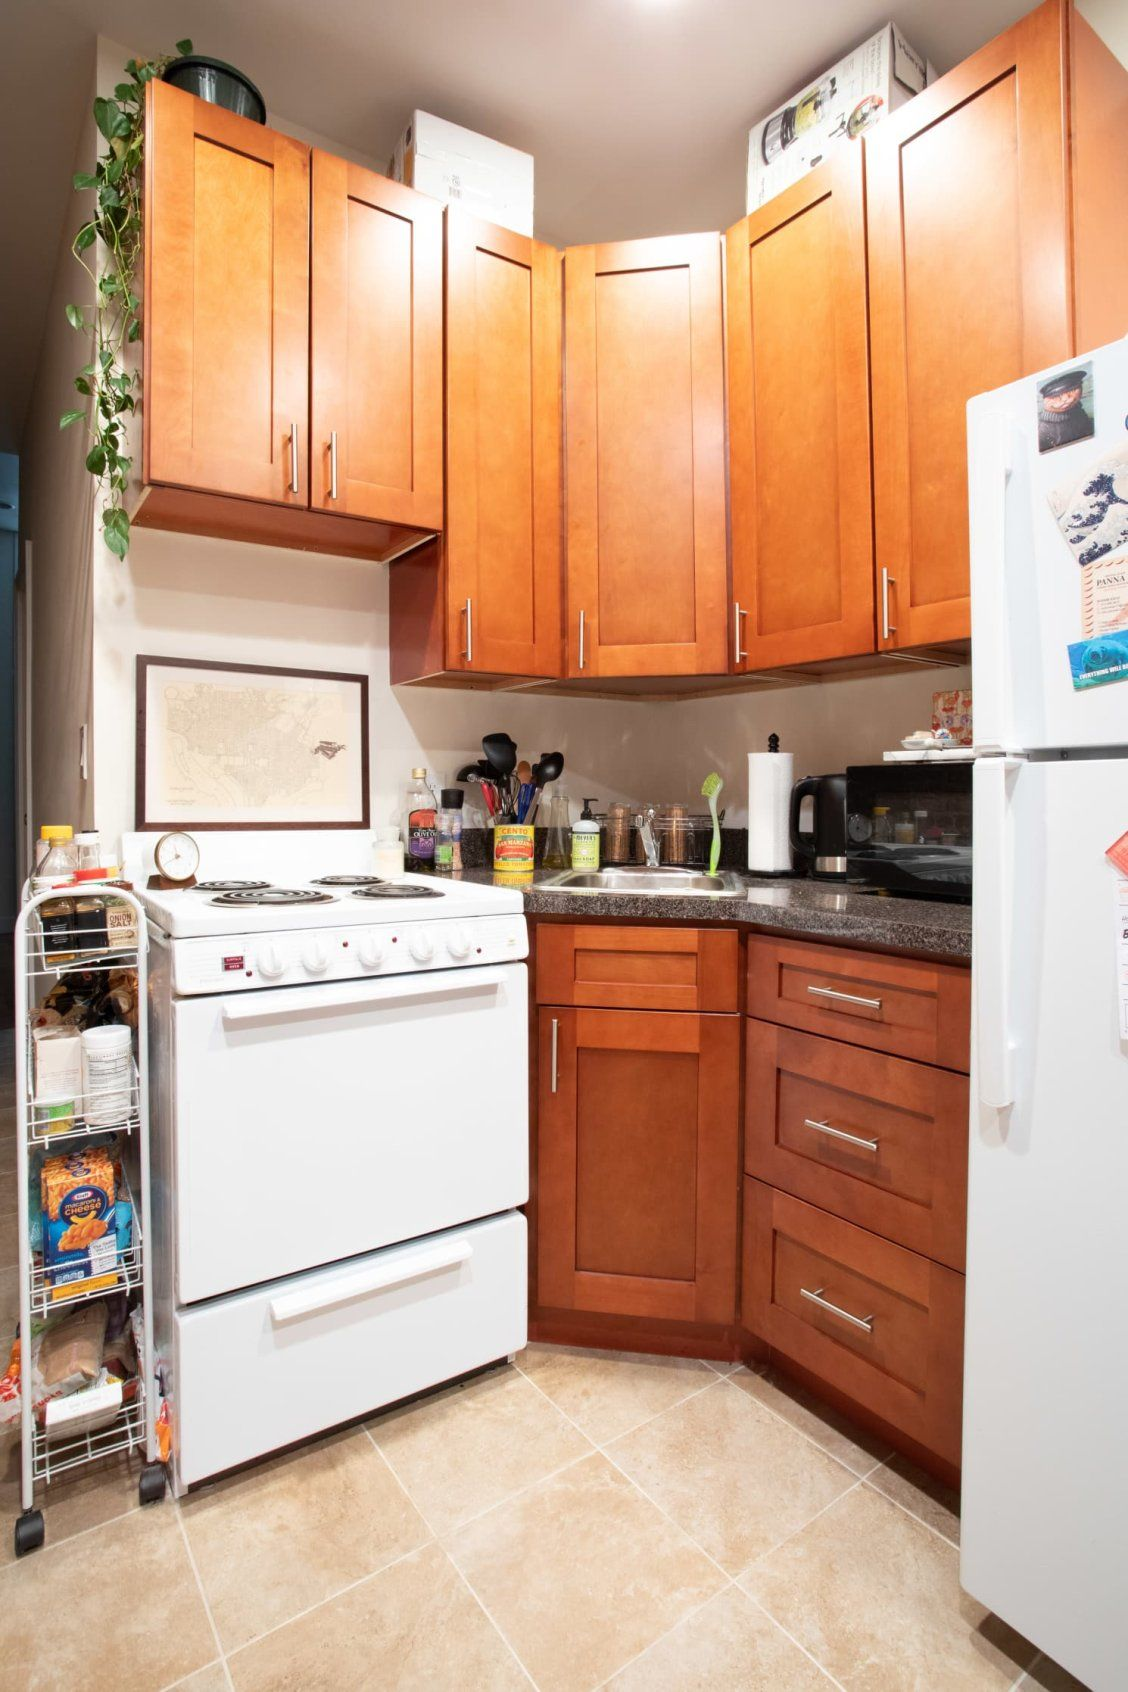 Roommates Decorated This Apartment With Lots Of Craigslist And Facebook Marketplace Scores House Tours From Apartment Therapy Cosy Kitchen Home Decor Wall